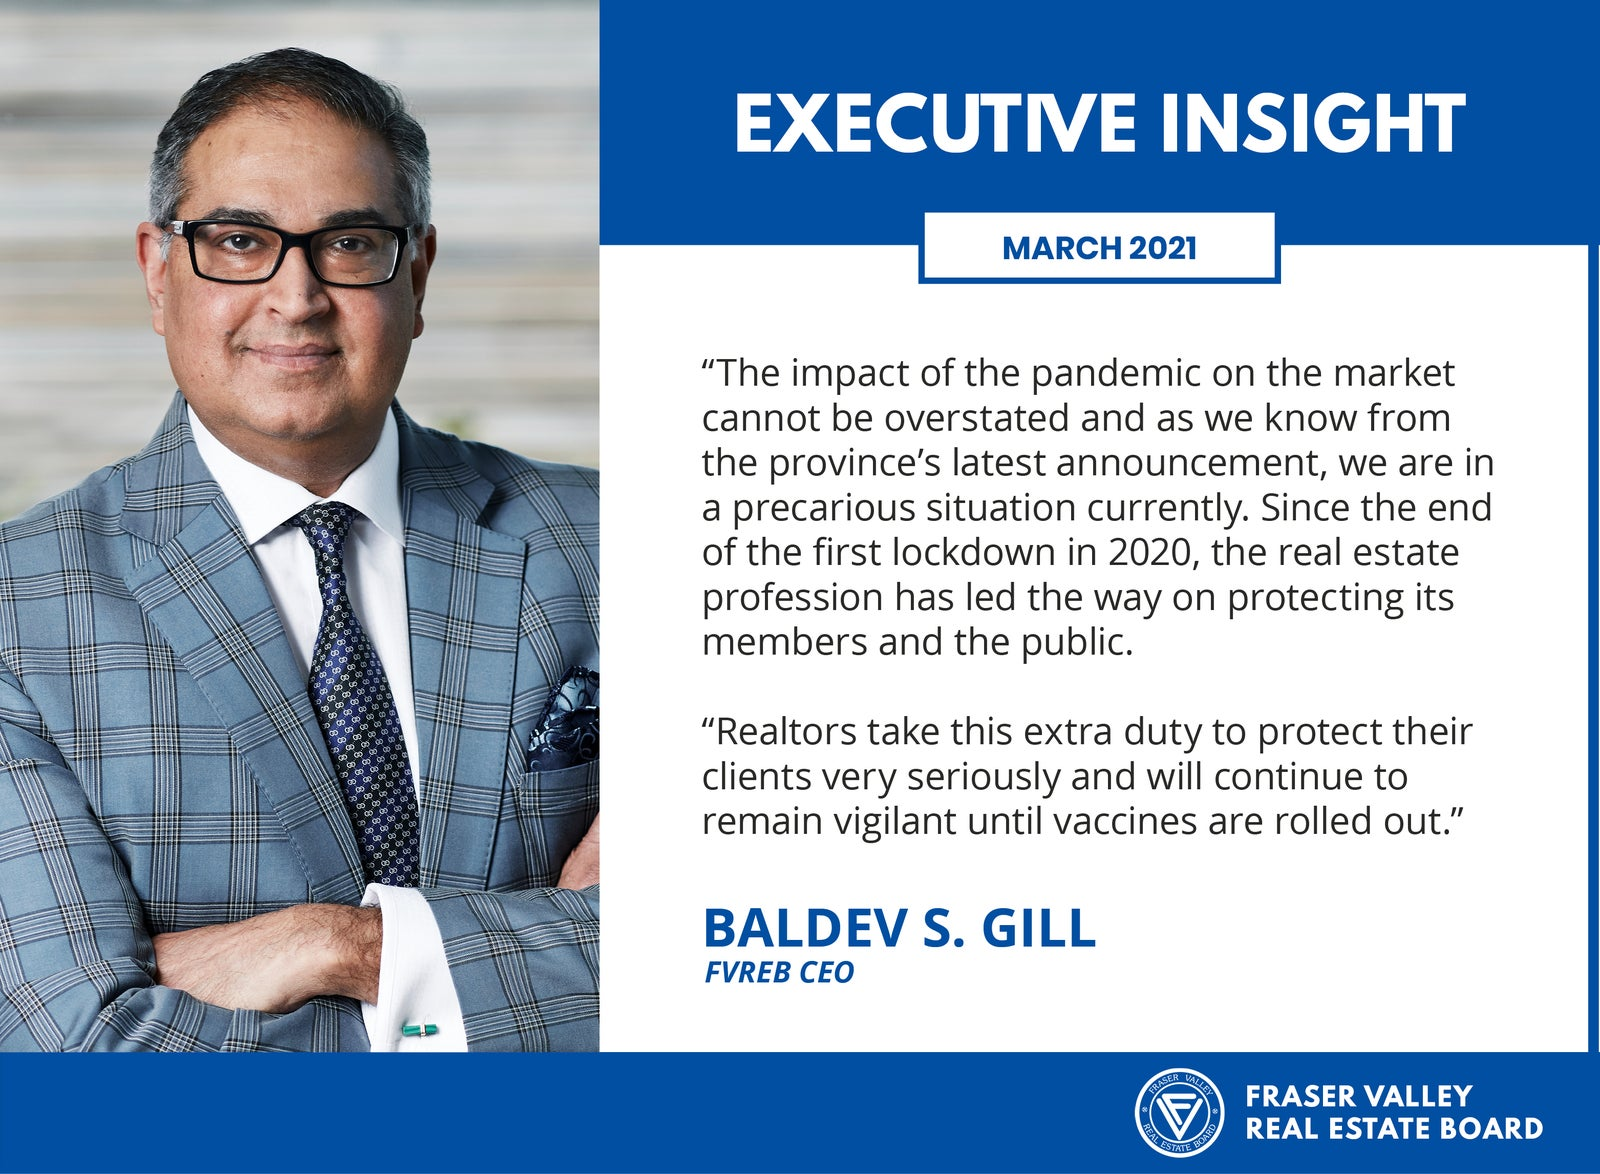 Executive Insight March 2021 - FVREB